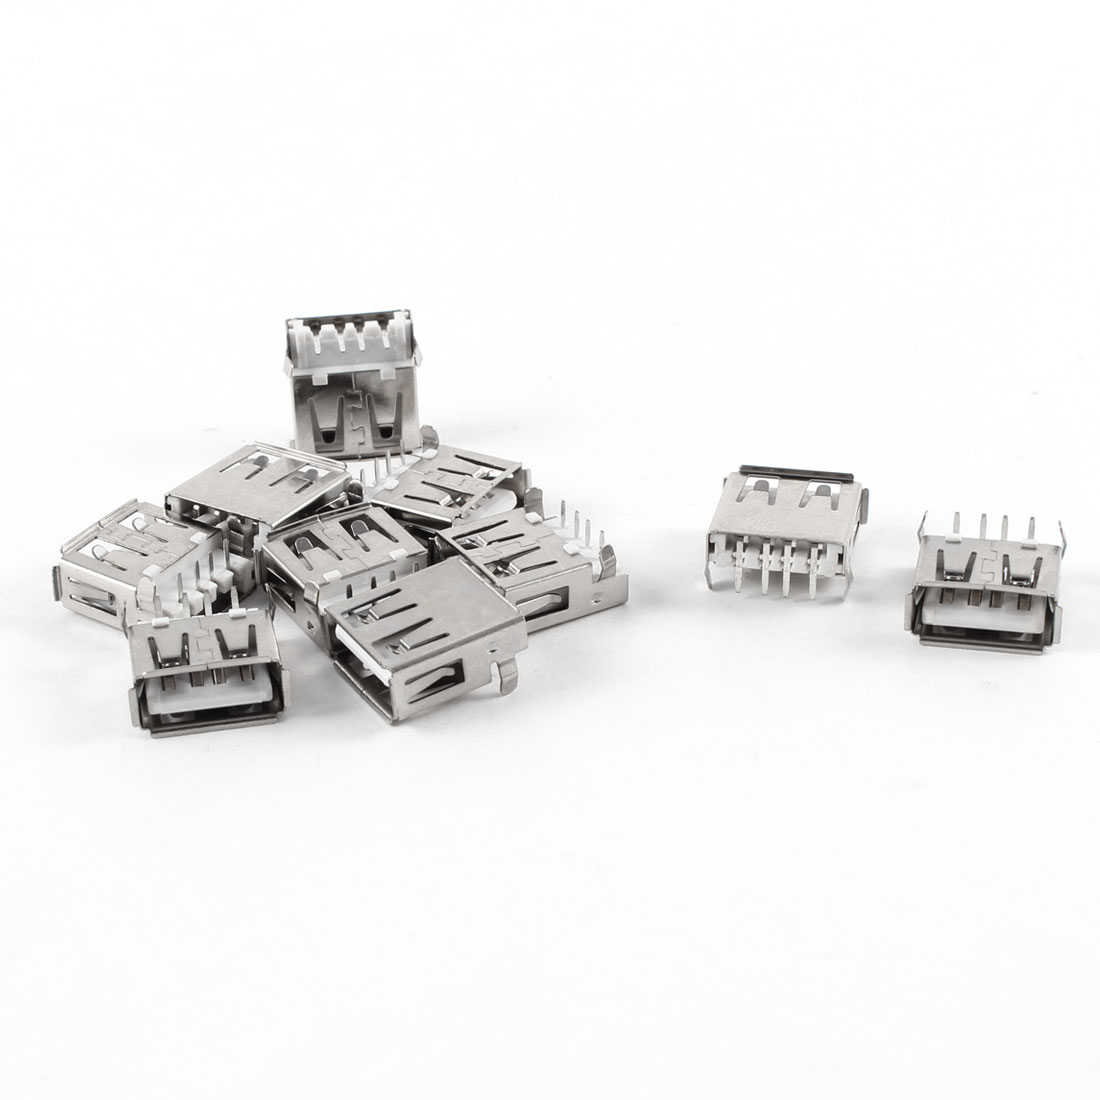 10 Pcs Right Angle 4-Pin Female USB 2.0 A Jack Socket Connector